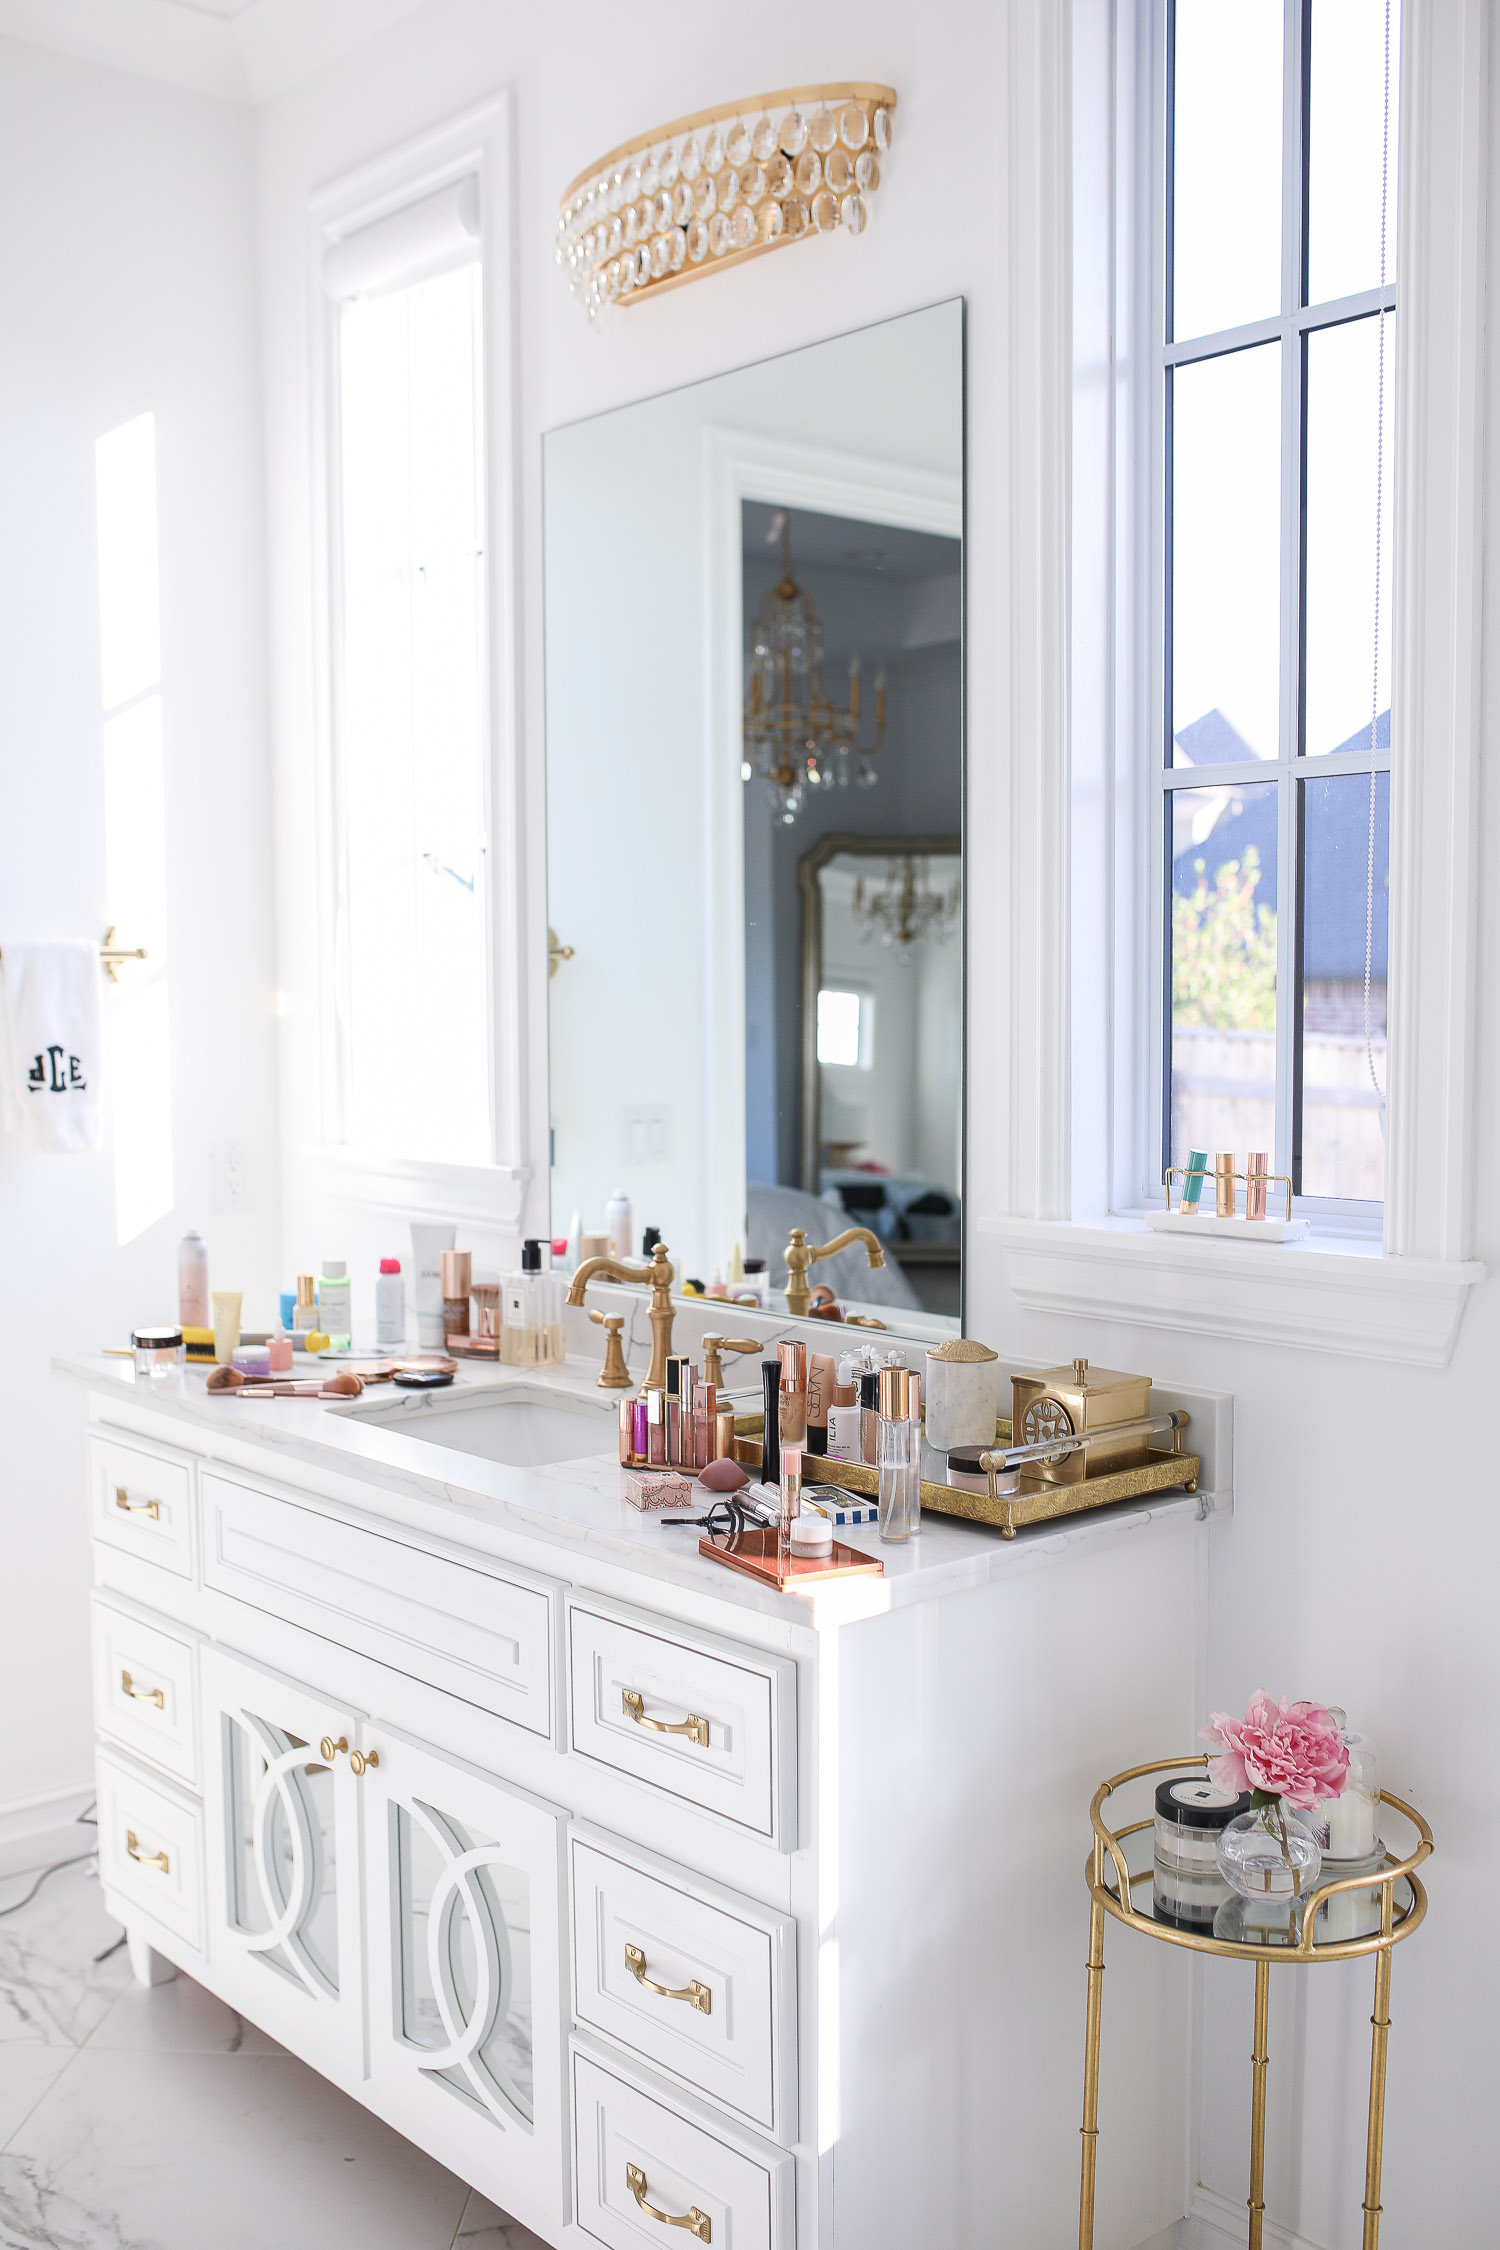 Sephora savings event fall 2020, beauty blogger sephora favorites fall 2020, emily ann gemma |Sephora Beauty Insider Sale by popular US beauty blog, The Sweetest Thing: image of bathroom vanity covered in Sephora beauty products.